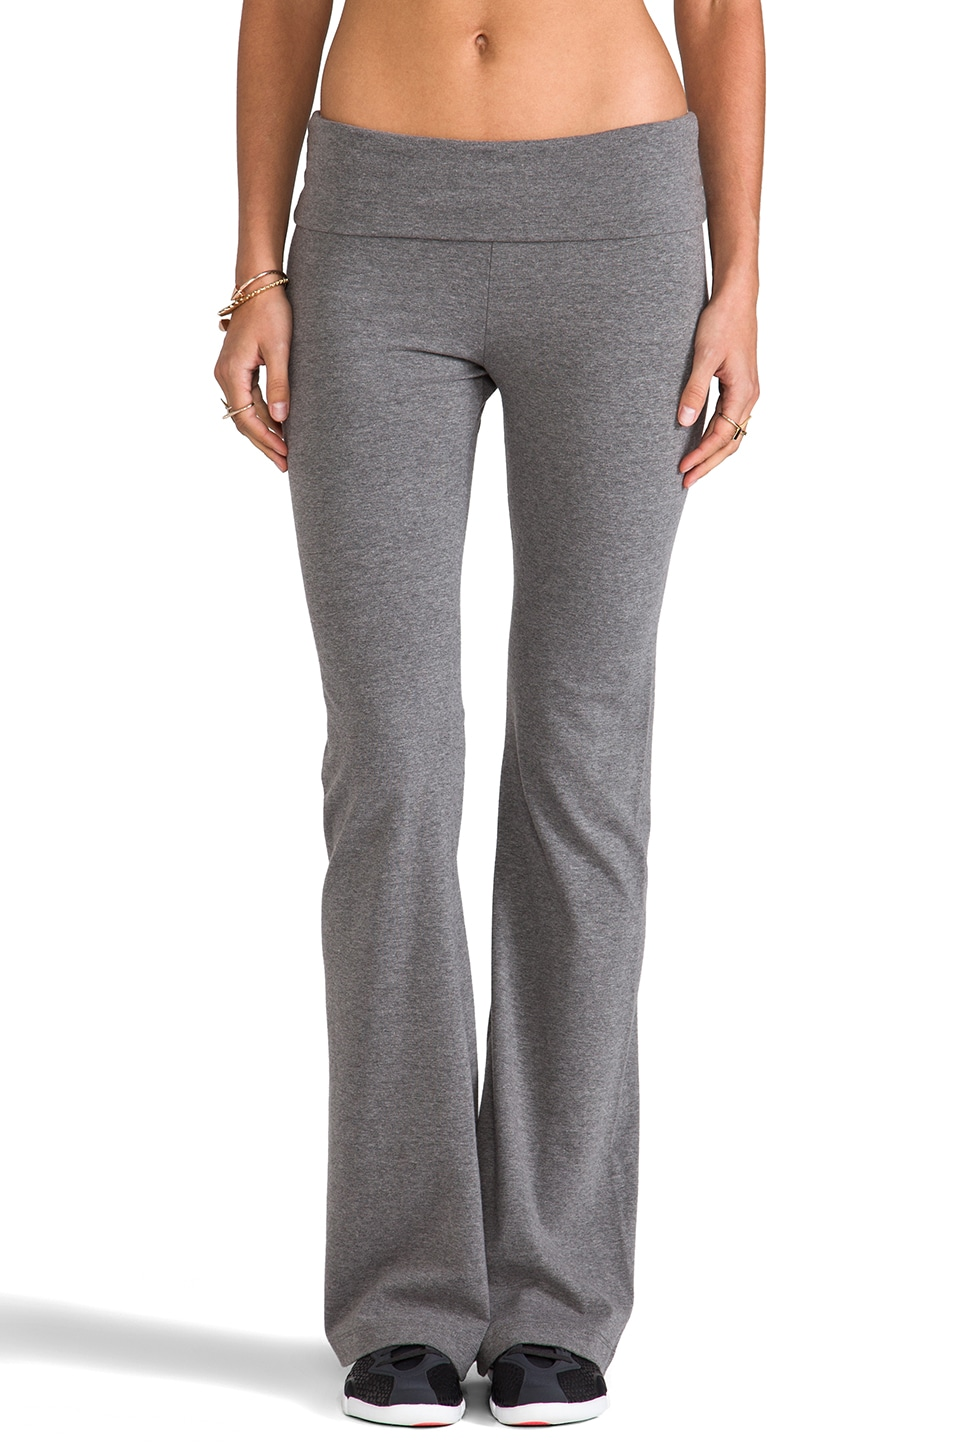 SOLOW Basics Fold Over Pant in Medium Heather Grey